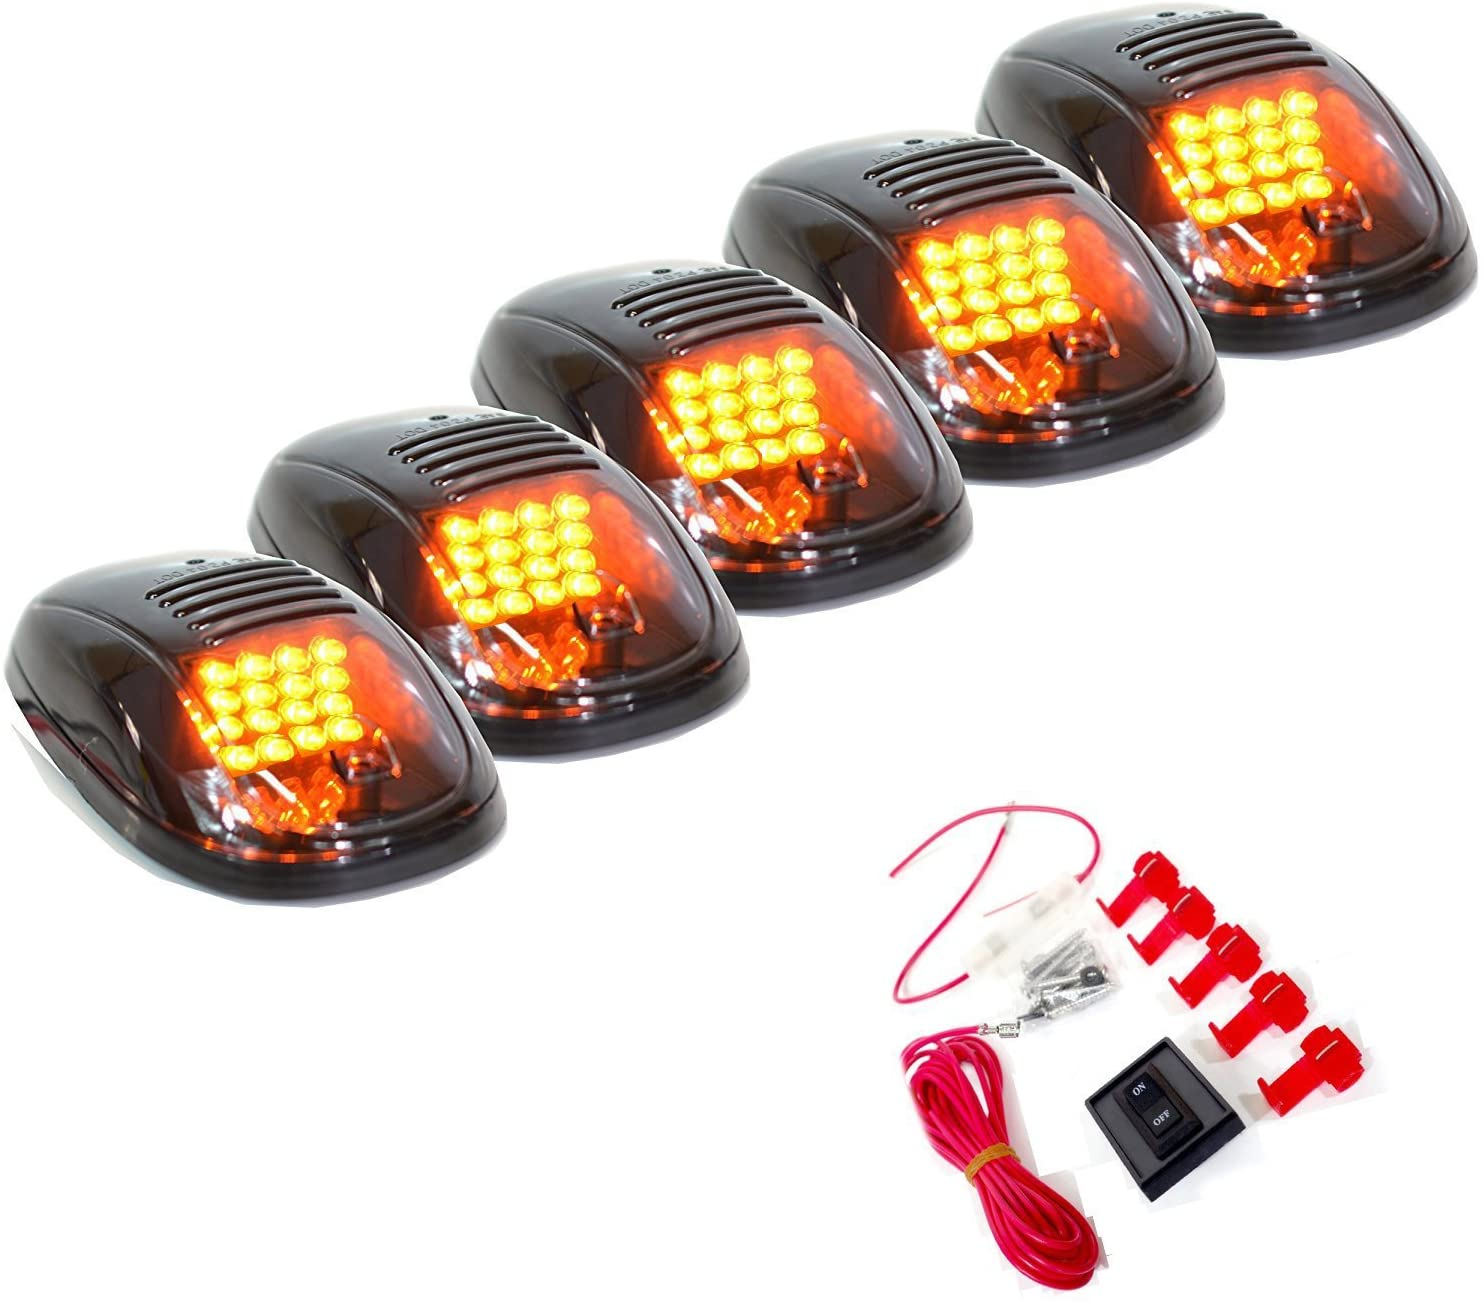 (Amber) 5pcs Cab Roof Top Running Marker Lights w/16 SMD LED Bulbs Replacement for 2003-2017 Dodge Ram 1500/2500/3500/4500/5500